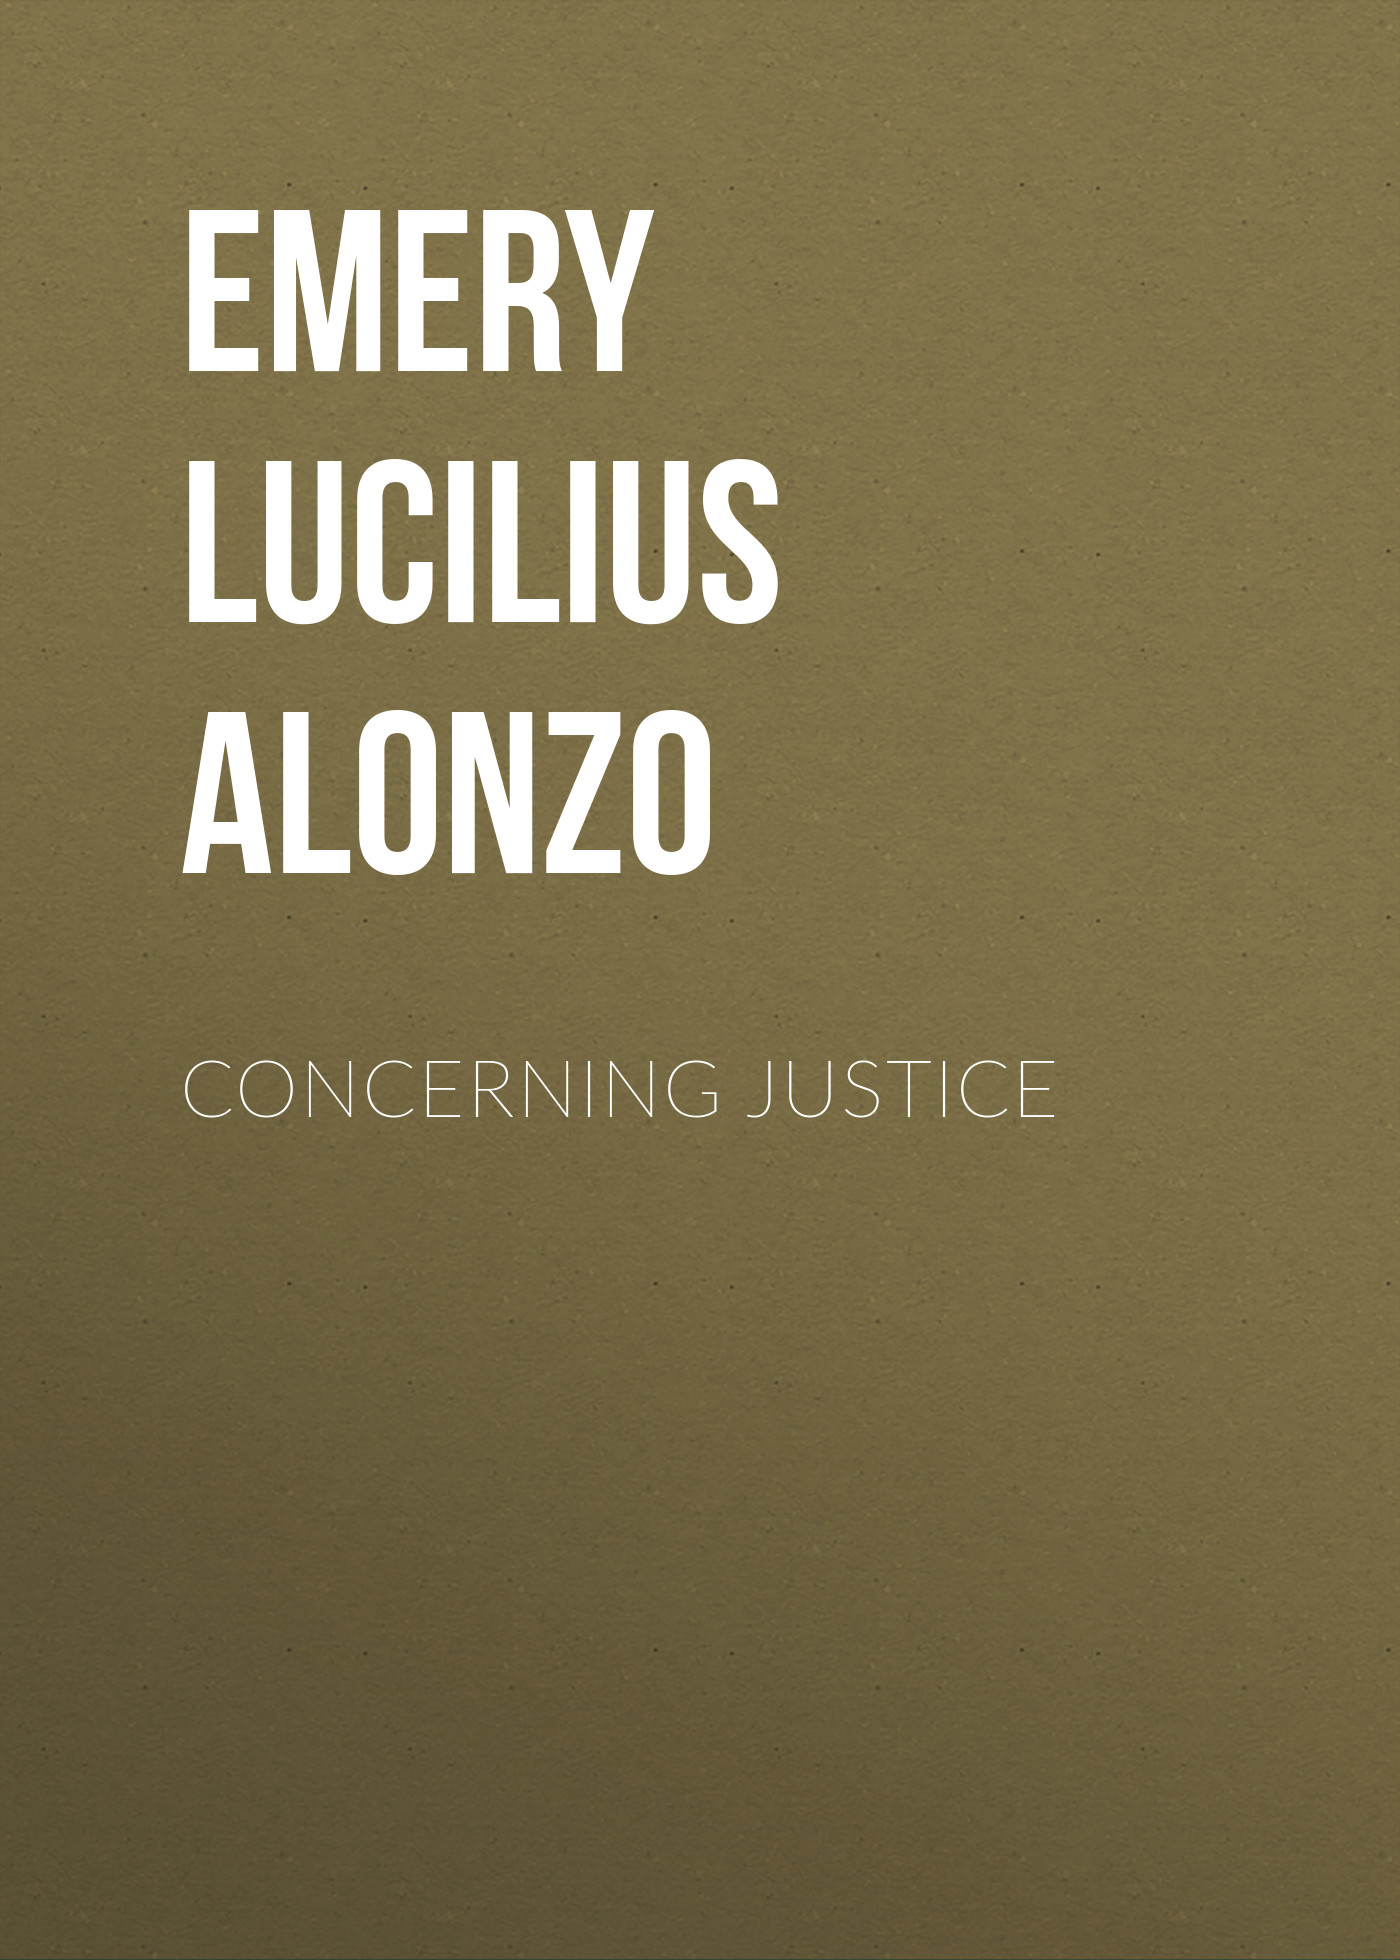 Emery Lucilius Alonzo Concerning Justice restorative justice for juveniles